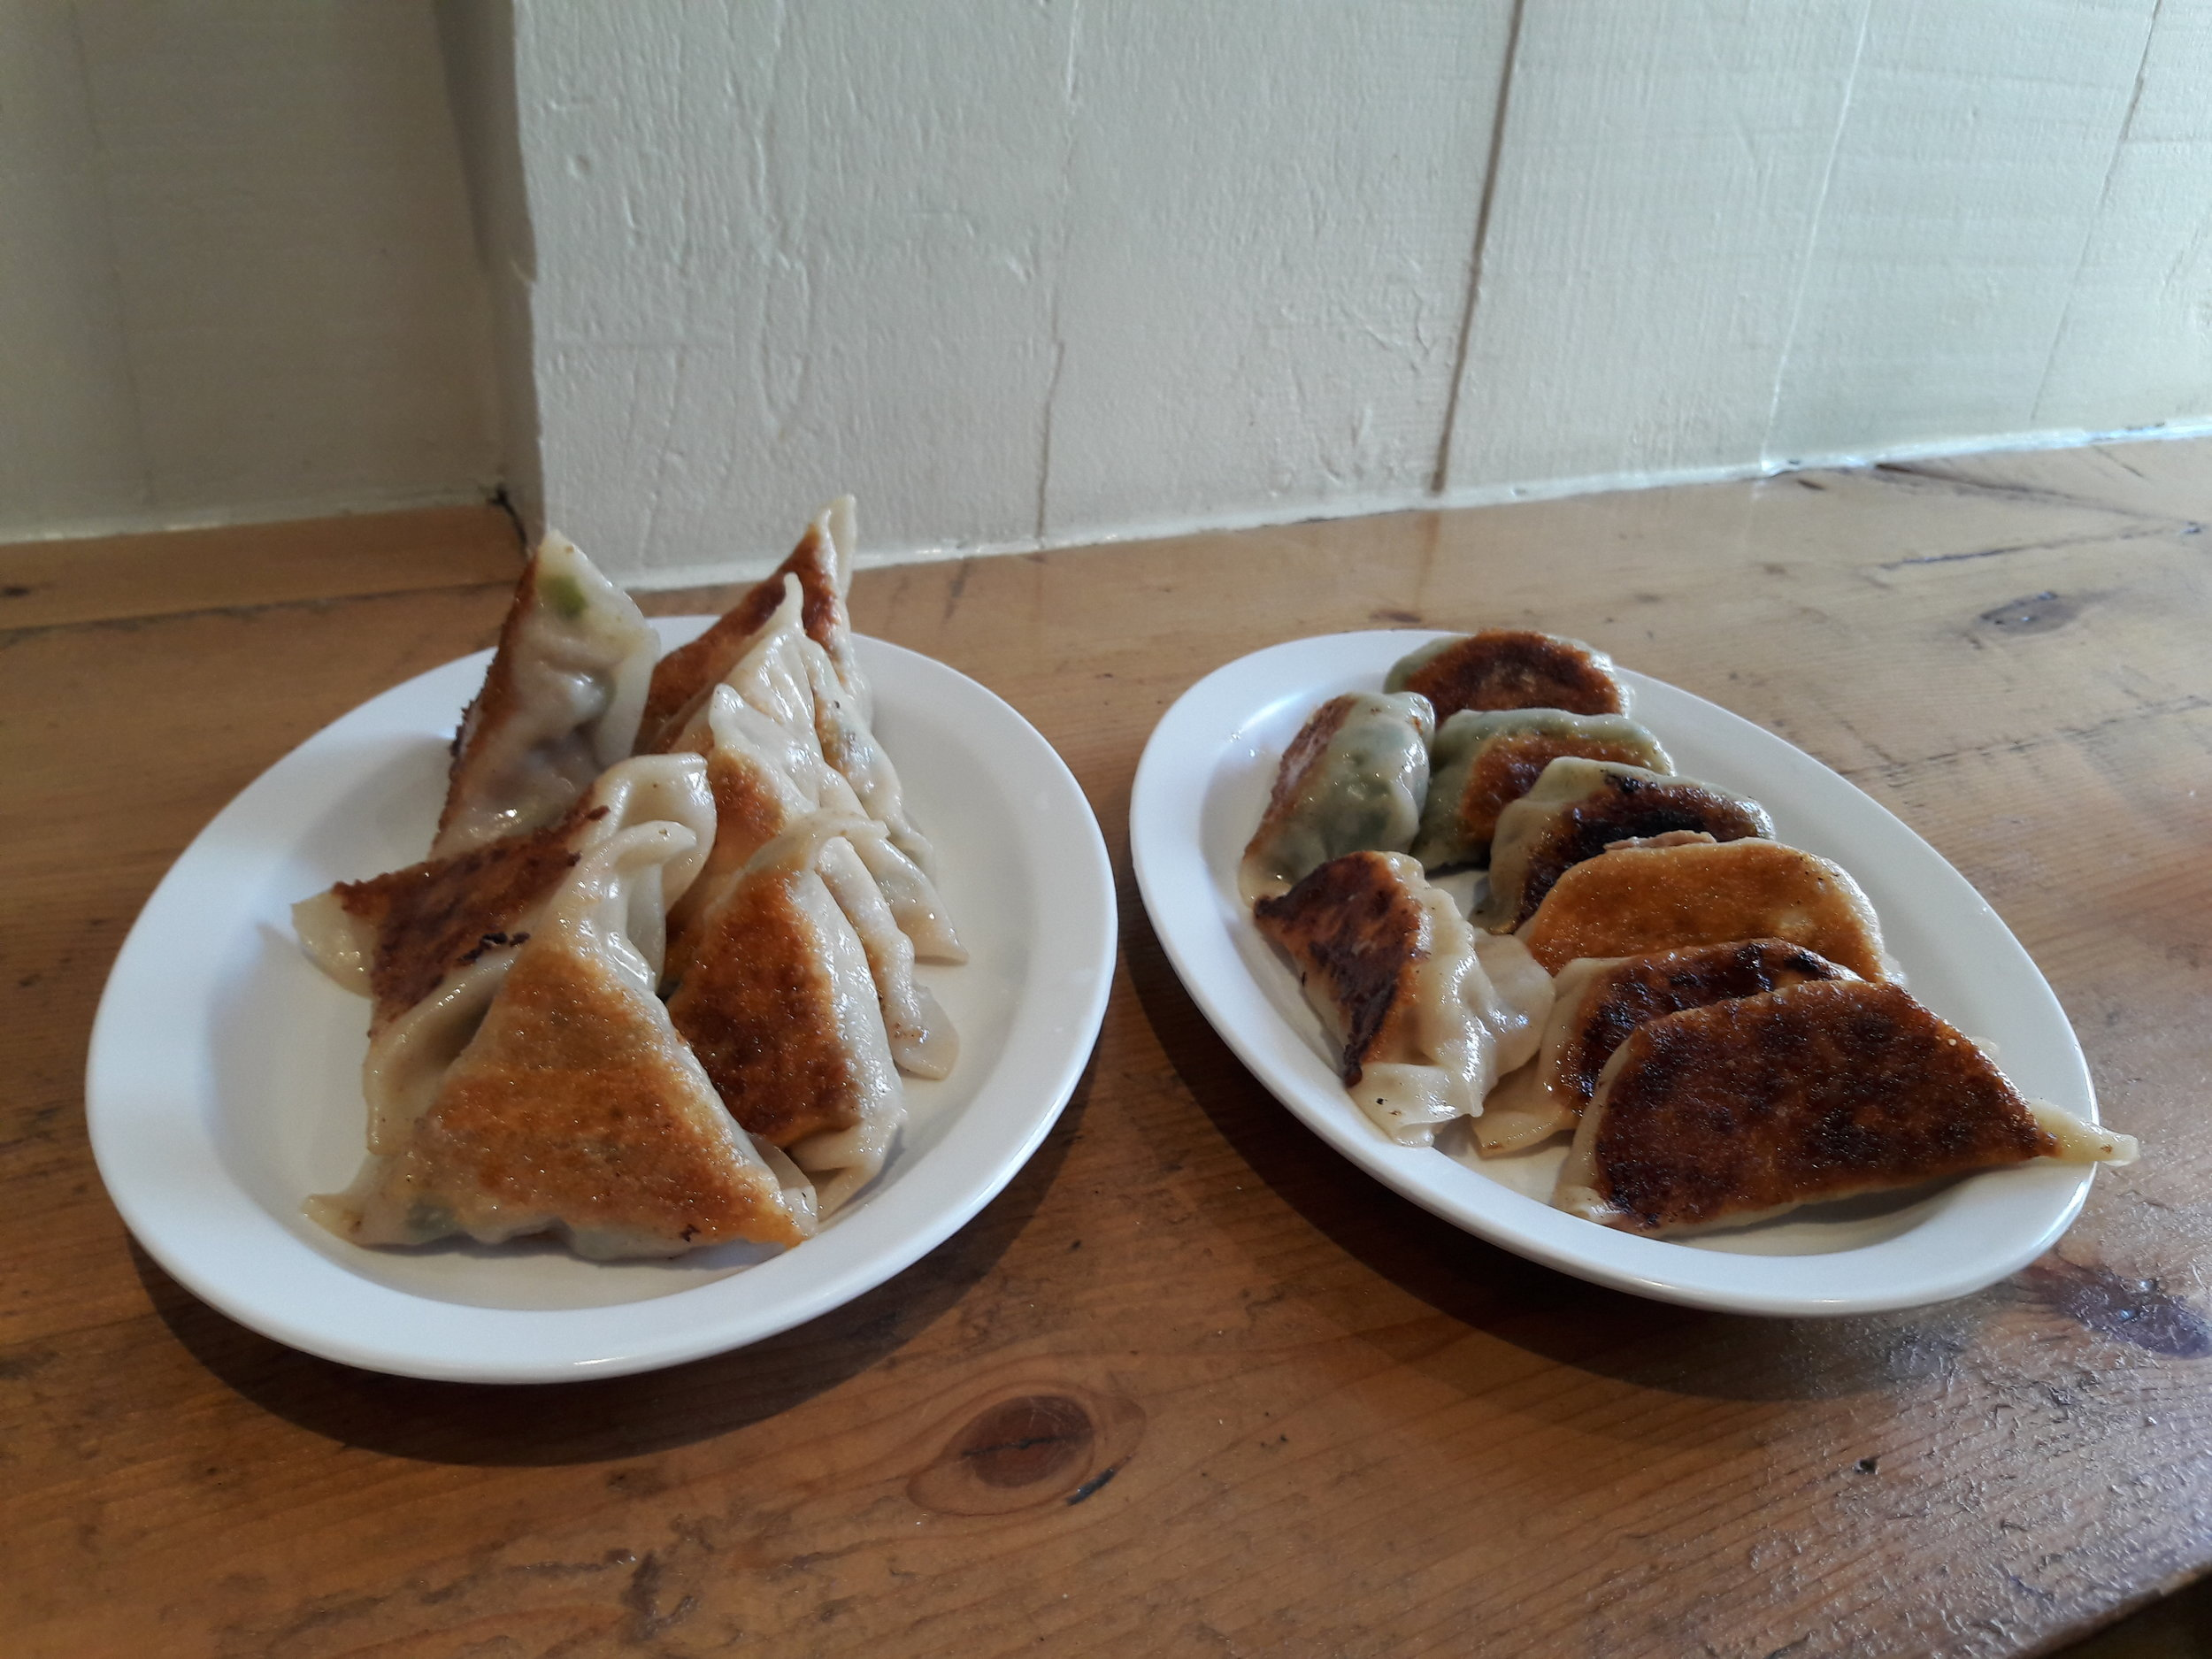 Overly healthy and organic dumplings at Mimi Cheng's.